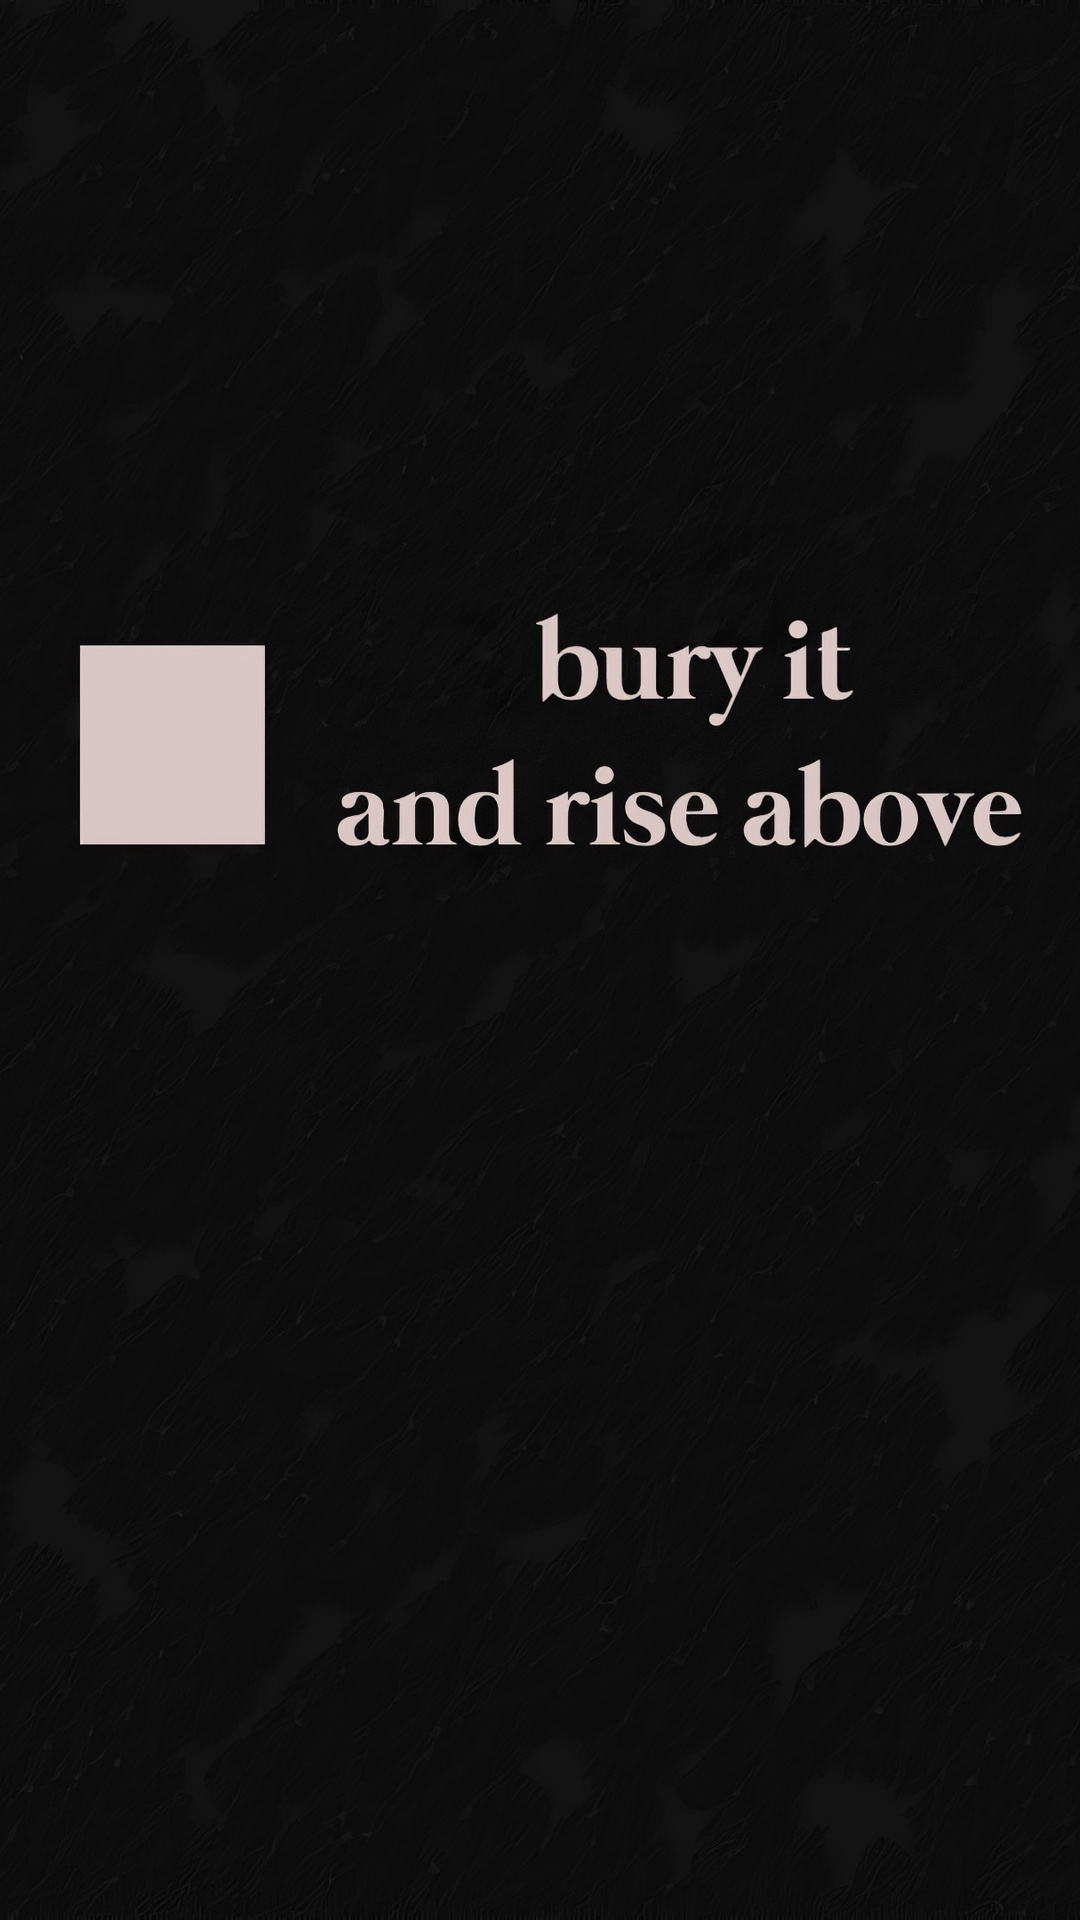 bury-it-and-rise-above-wc.jpg